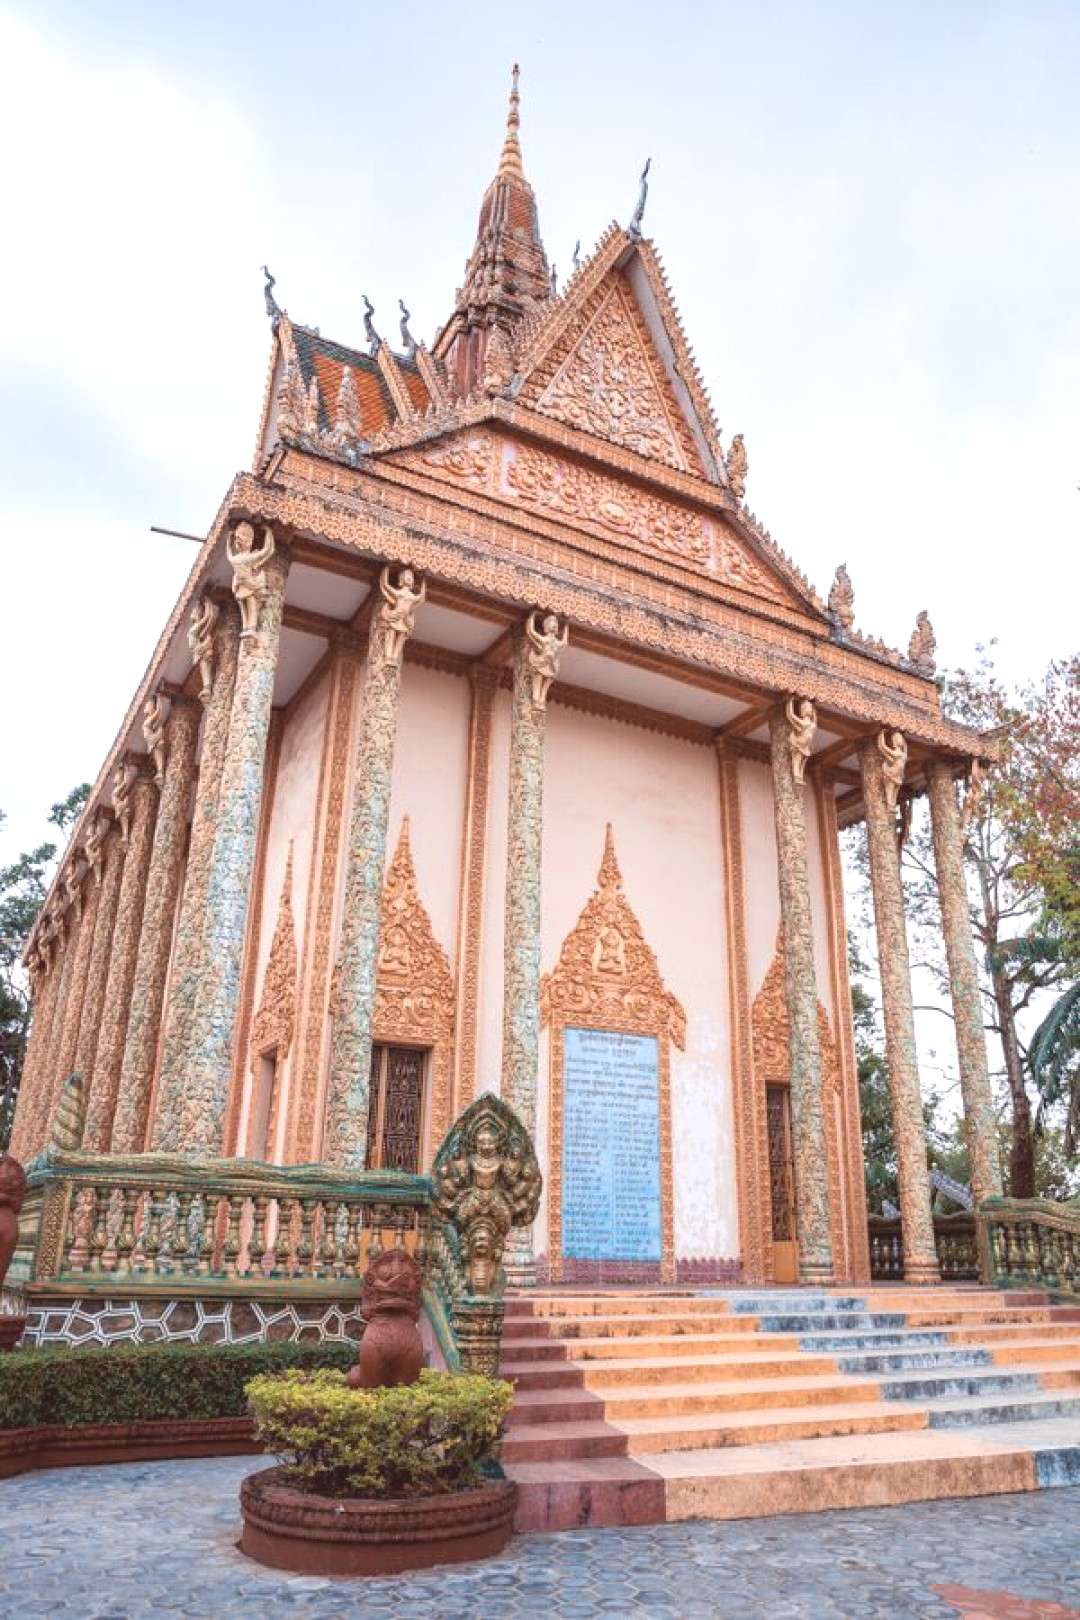 8 Reasons to Visit Kampot Cambodia There are many beautiful temples to see in Kampot. One of which